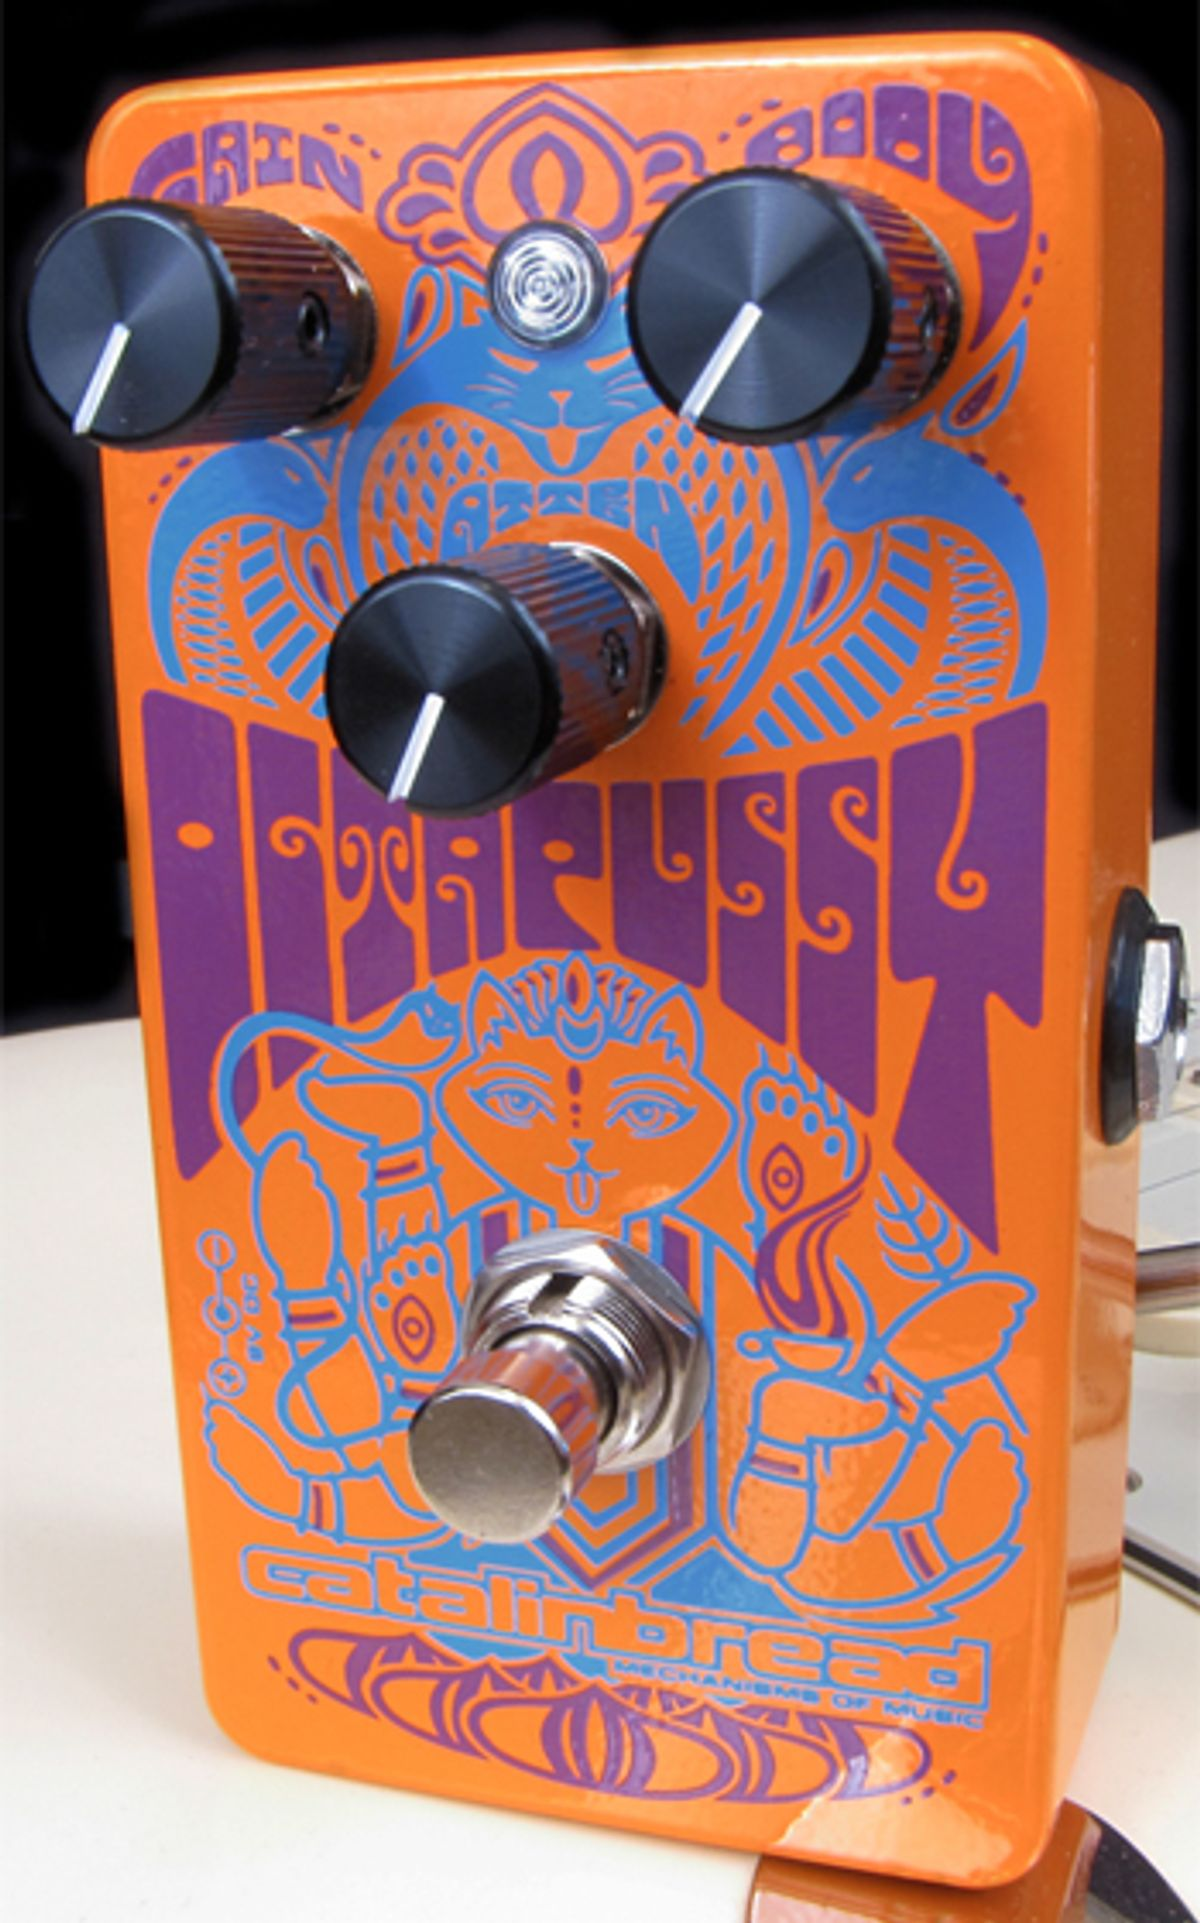 Catalinbread Releases the Octapussy Octave Fuzz Pedal